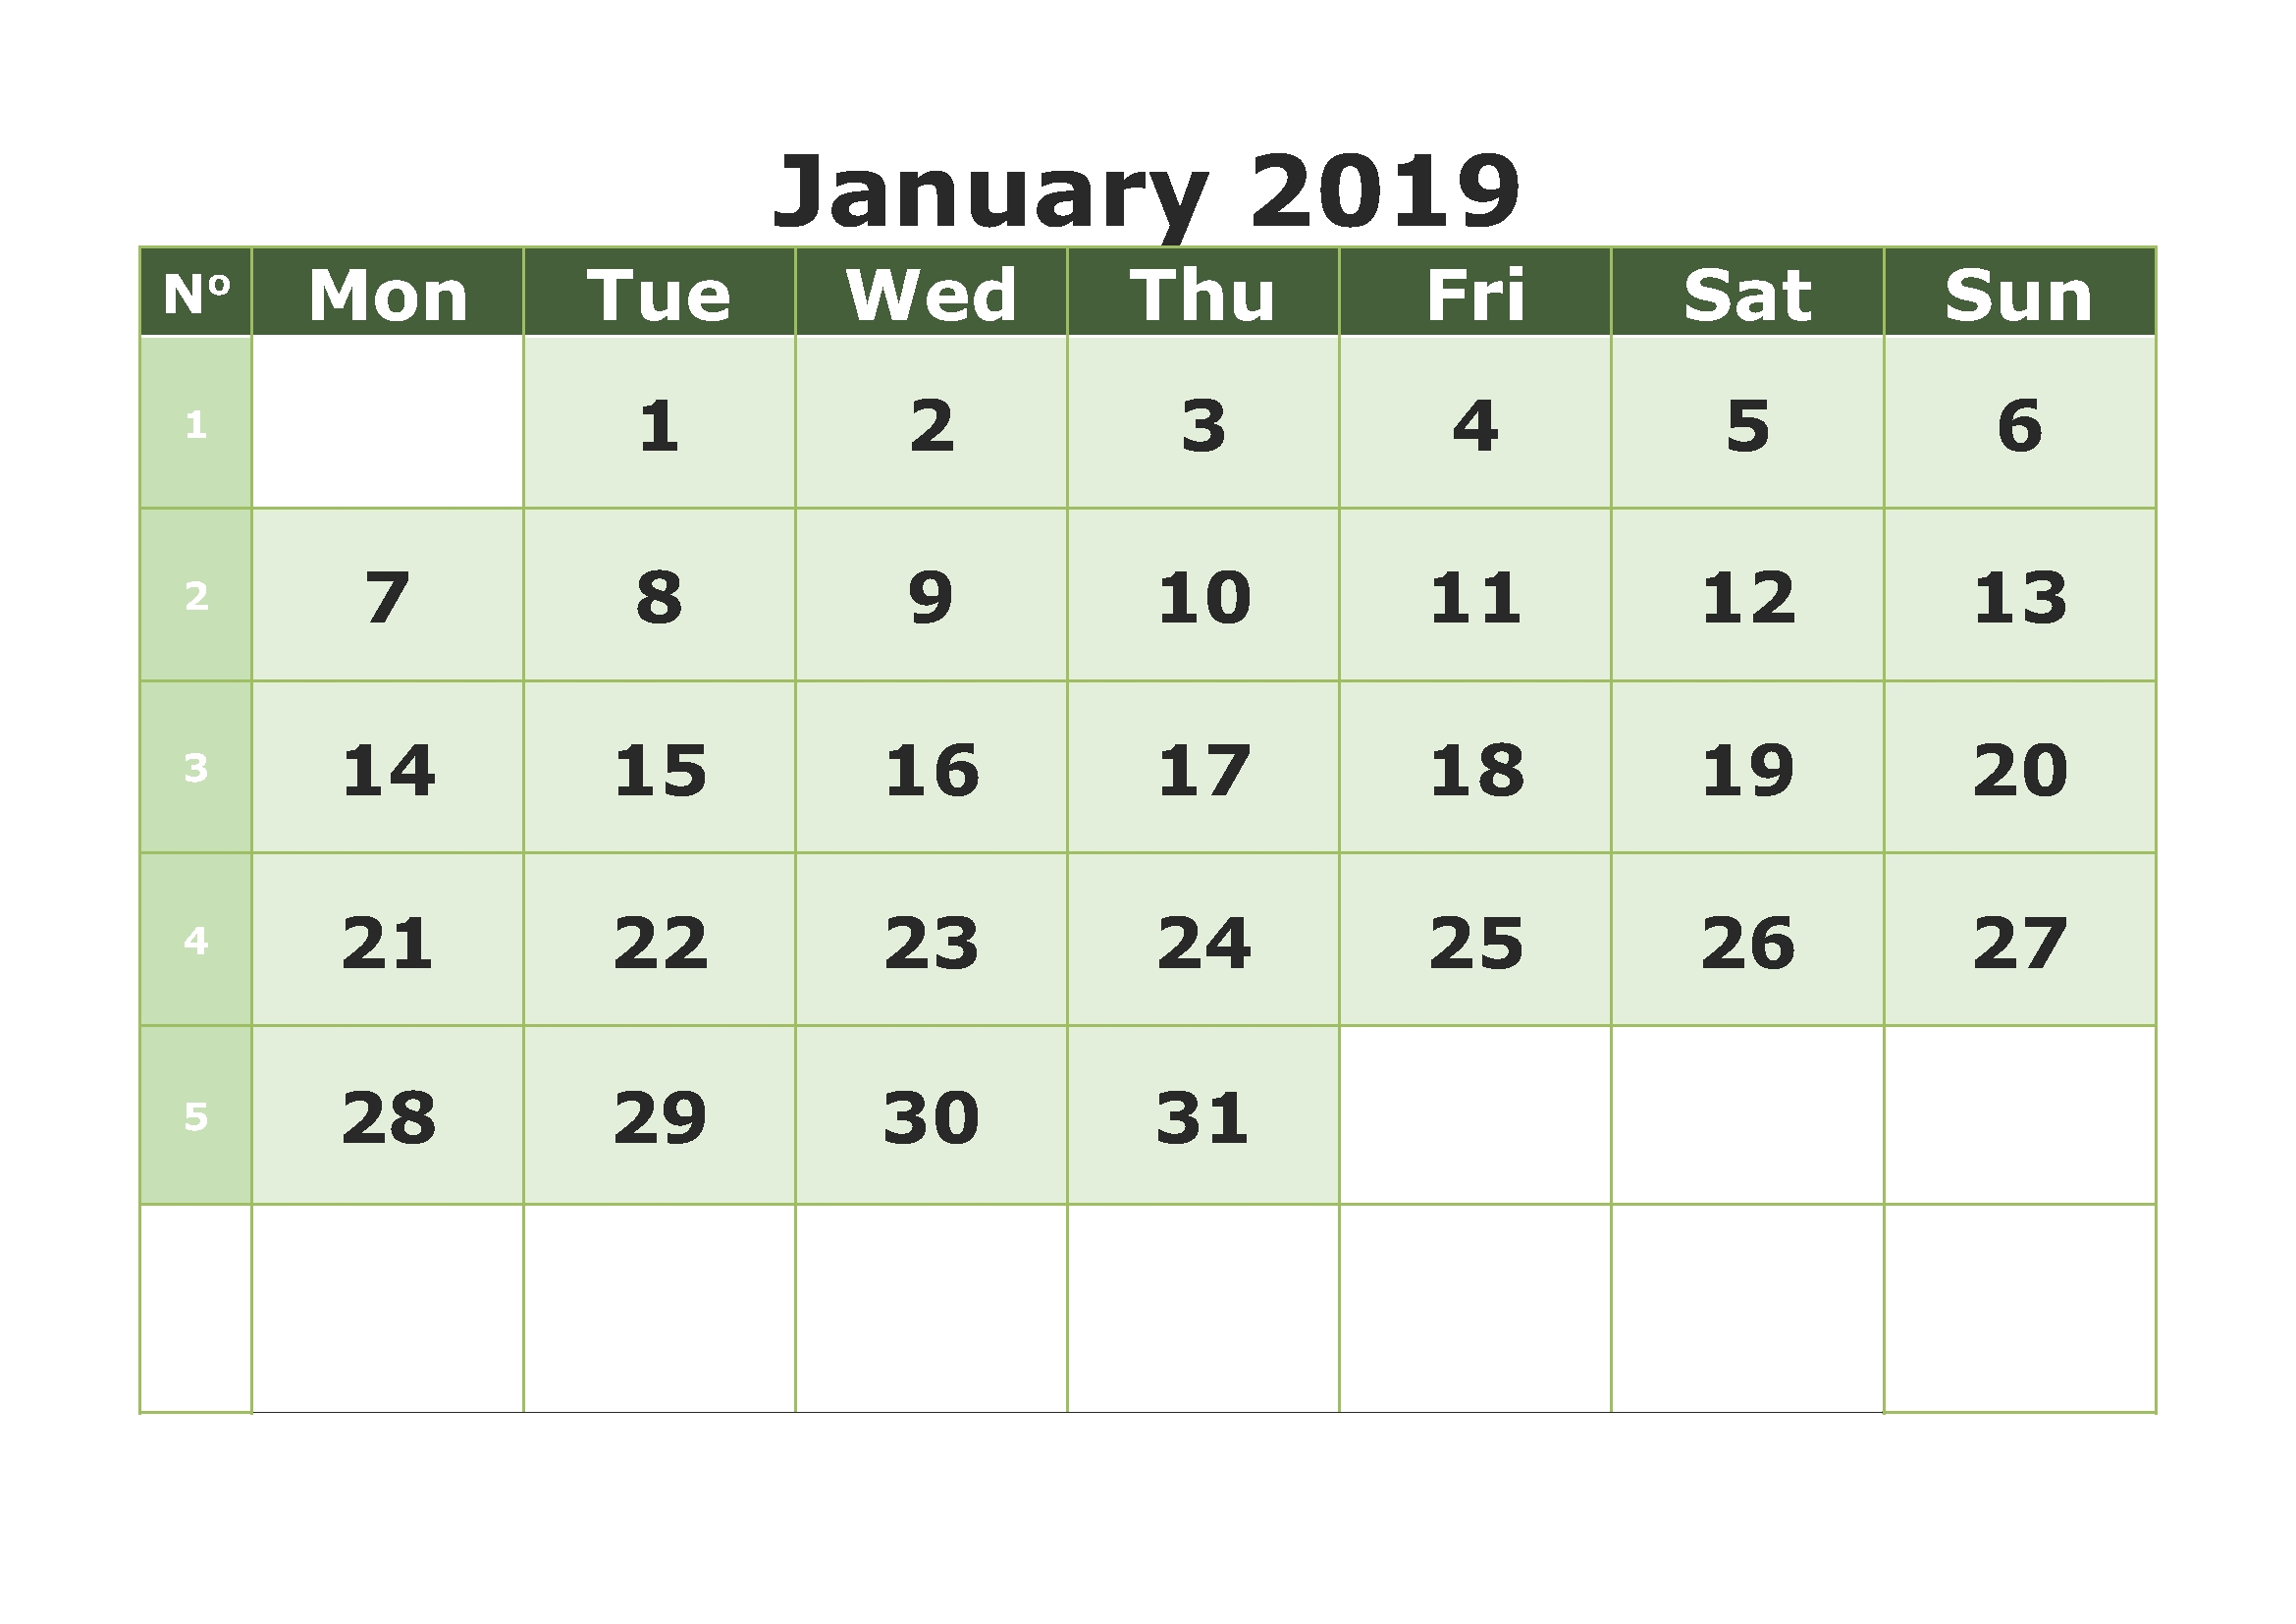 january 2019 calendar download january calendar january 2019::January 2019 Calendar with Holidays Printable